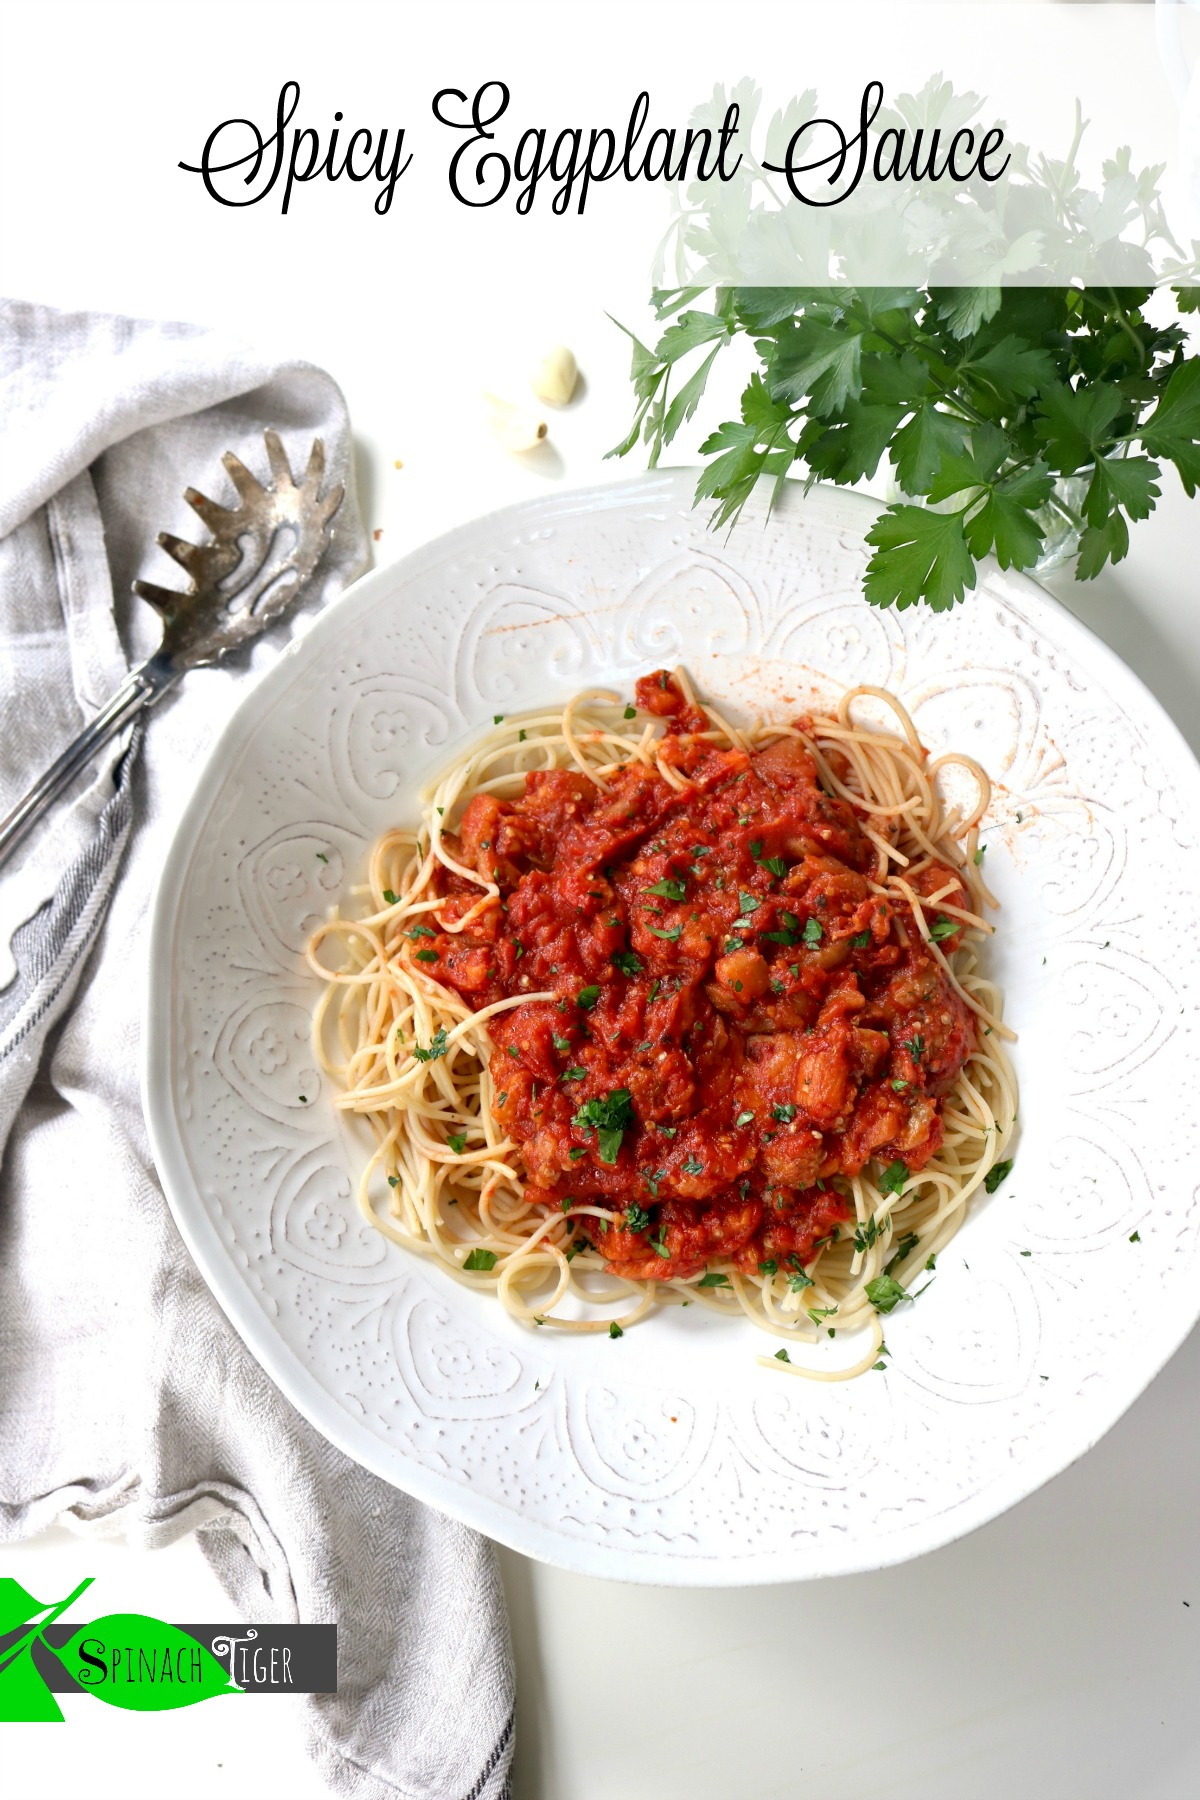 Marcella Hazan Spaghetti with Spicy Eggplant Sauce from Spinach Tiger